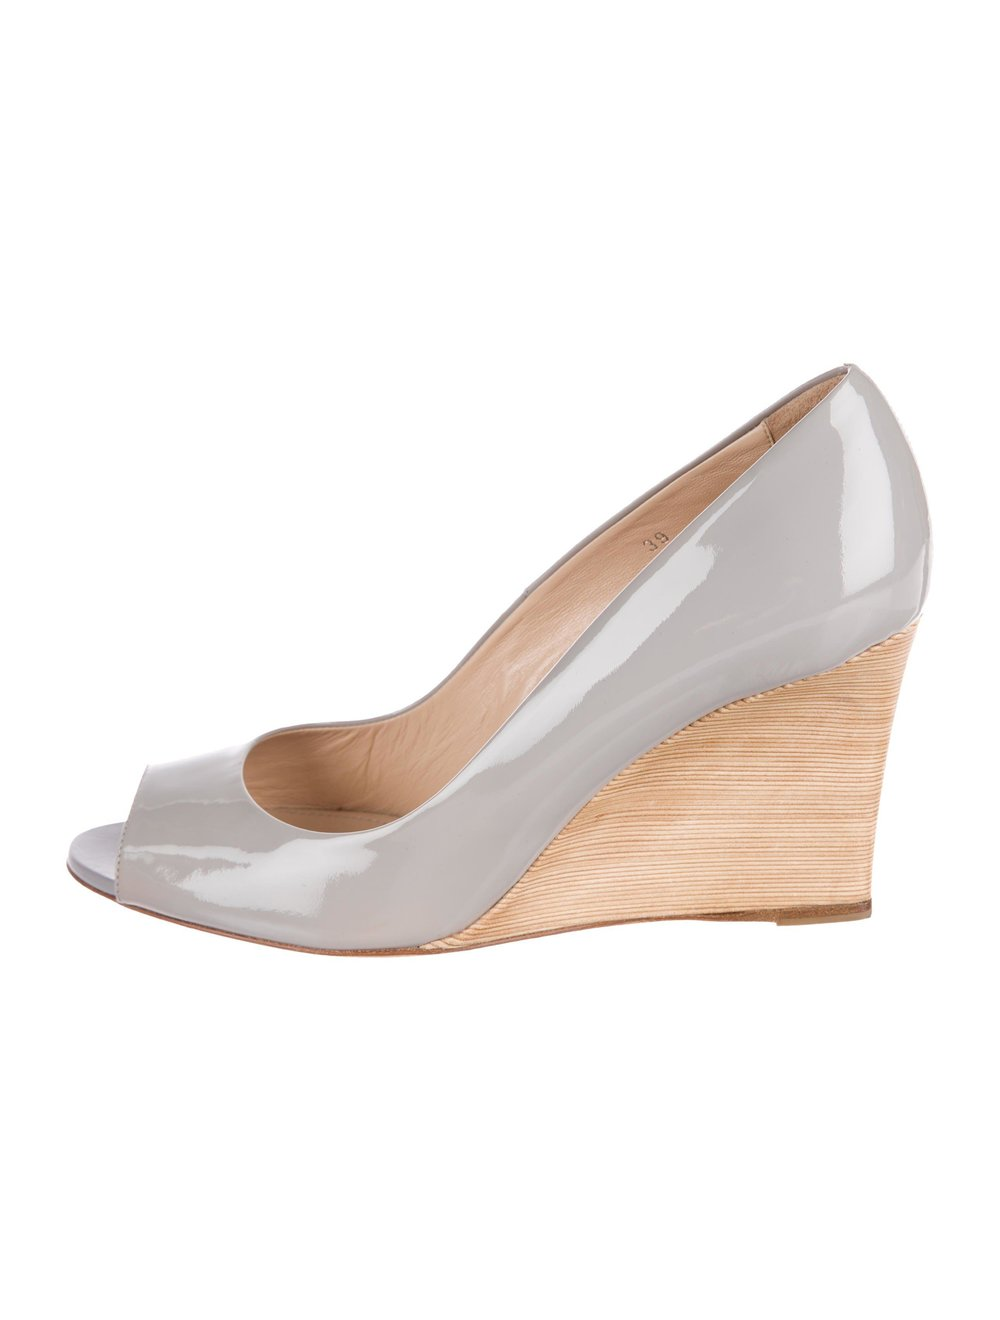 tods-Gray-Patent-Leather-Peep-toe-Wedges-Grey.jpeg